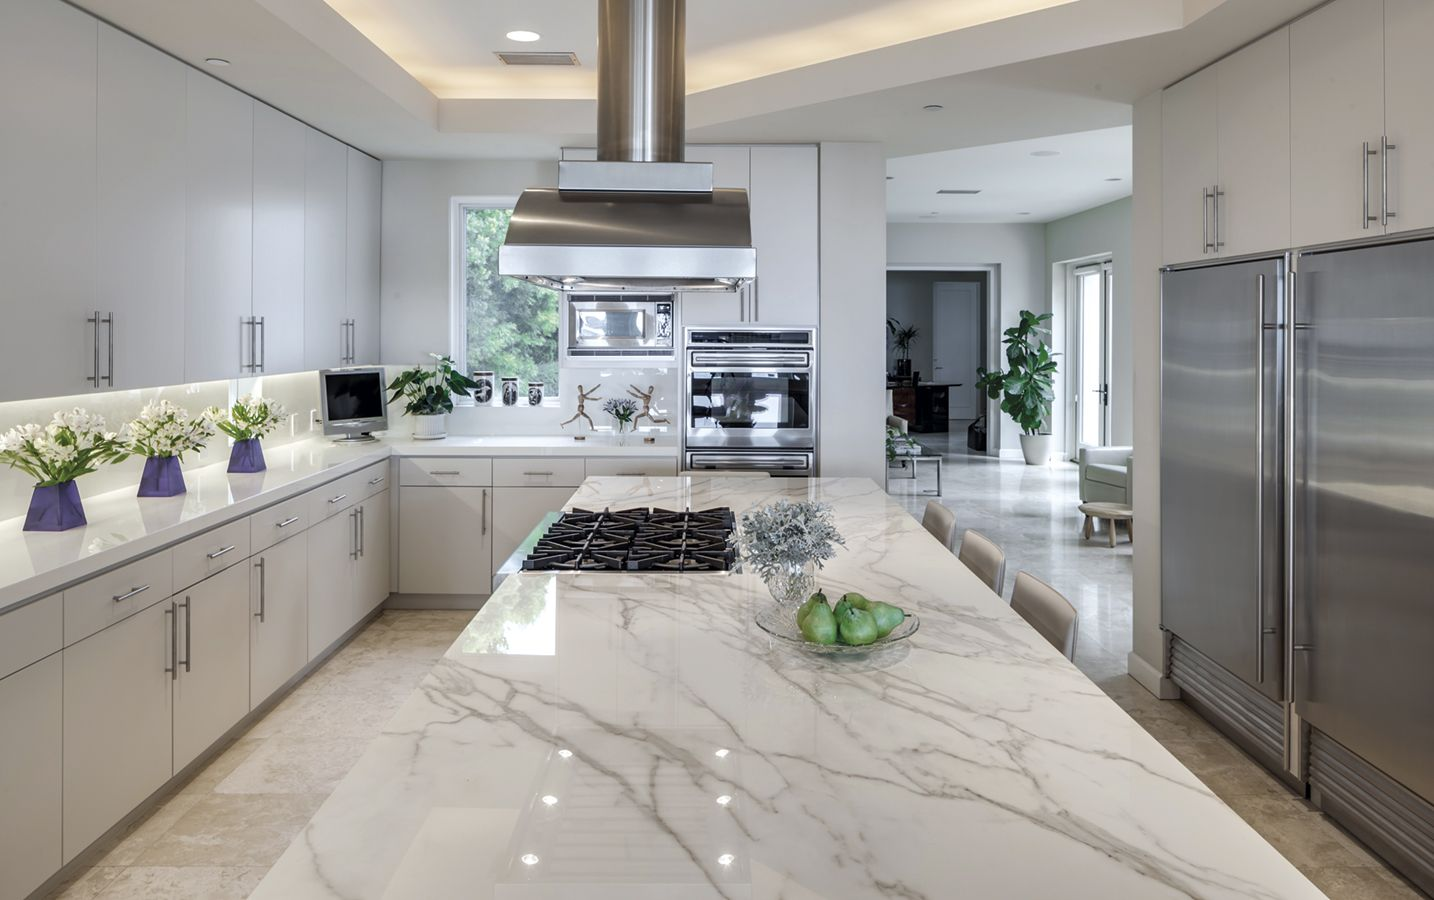 Encimera - Artic White Polished | Isla - Calacatta Polished ...